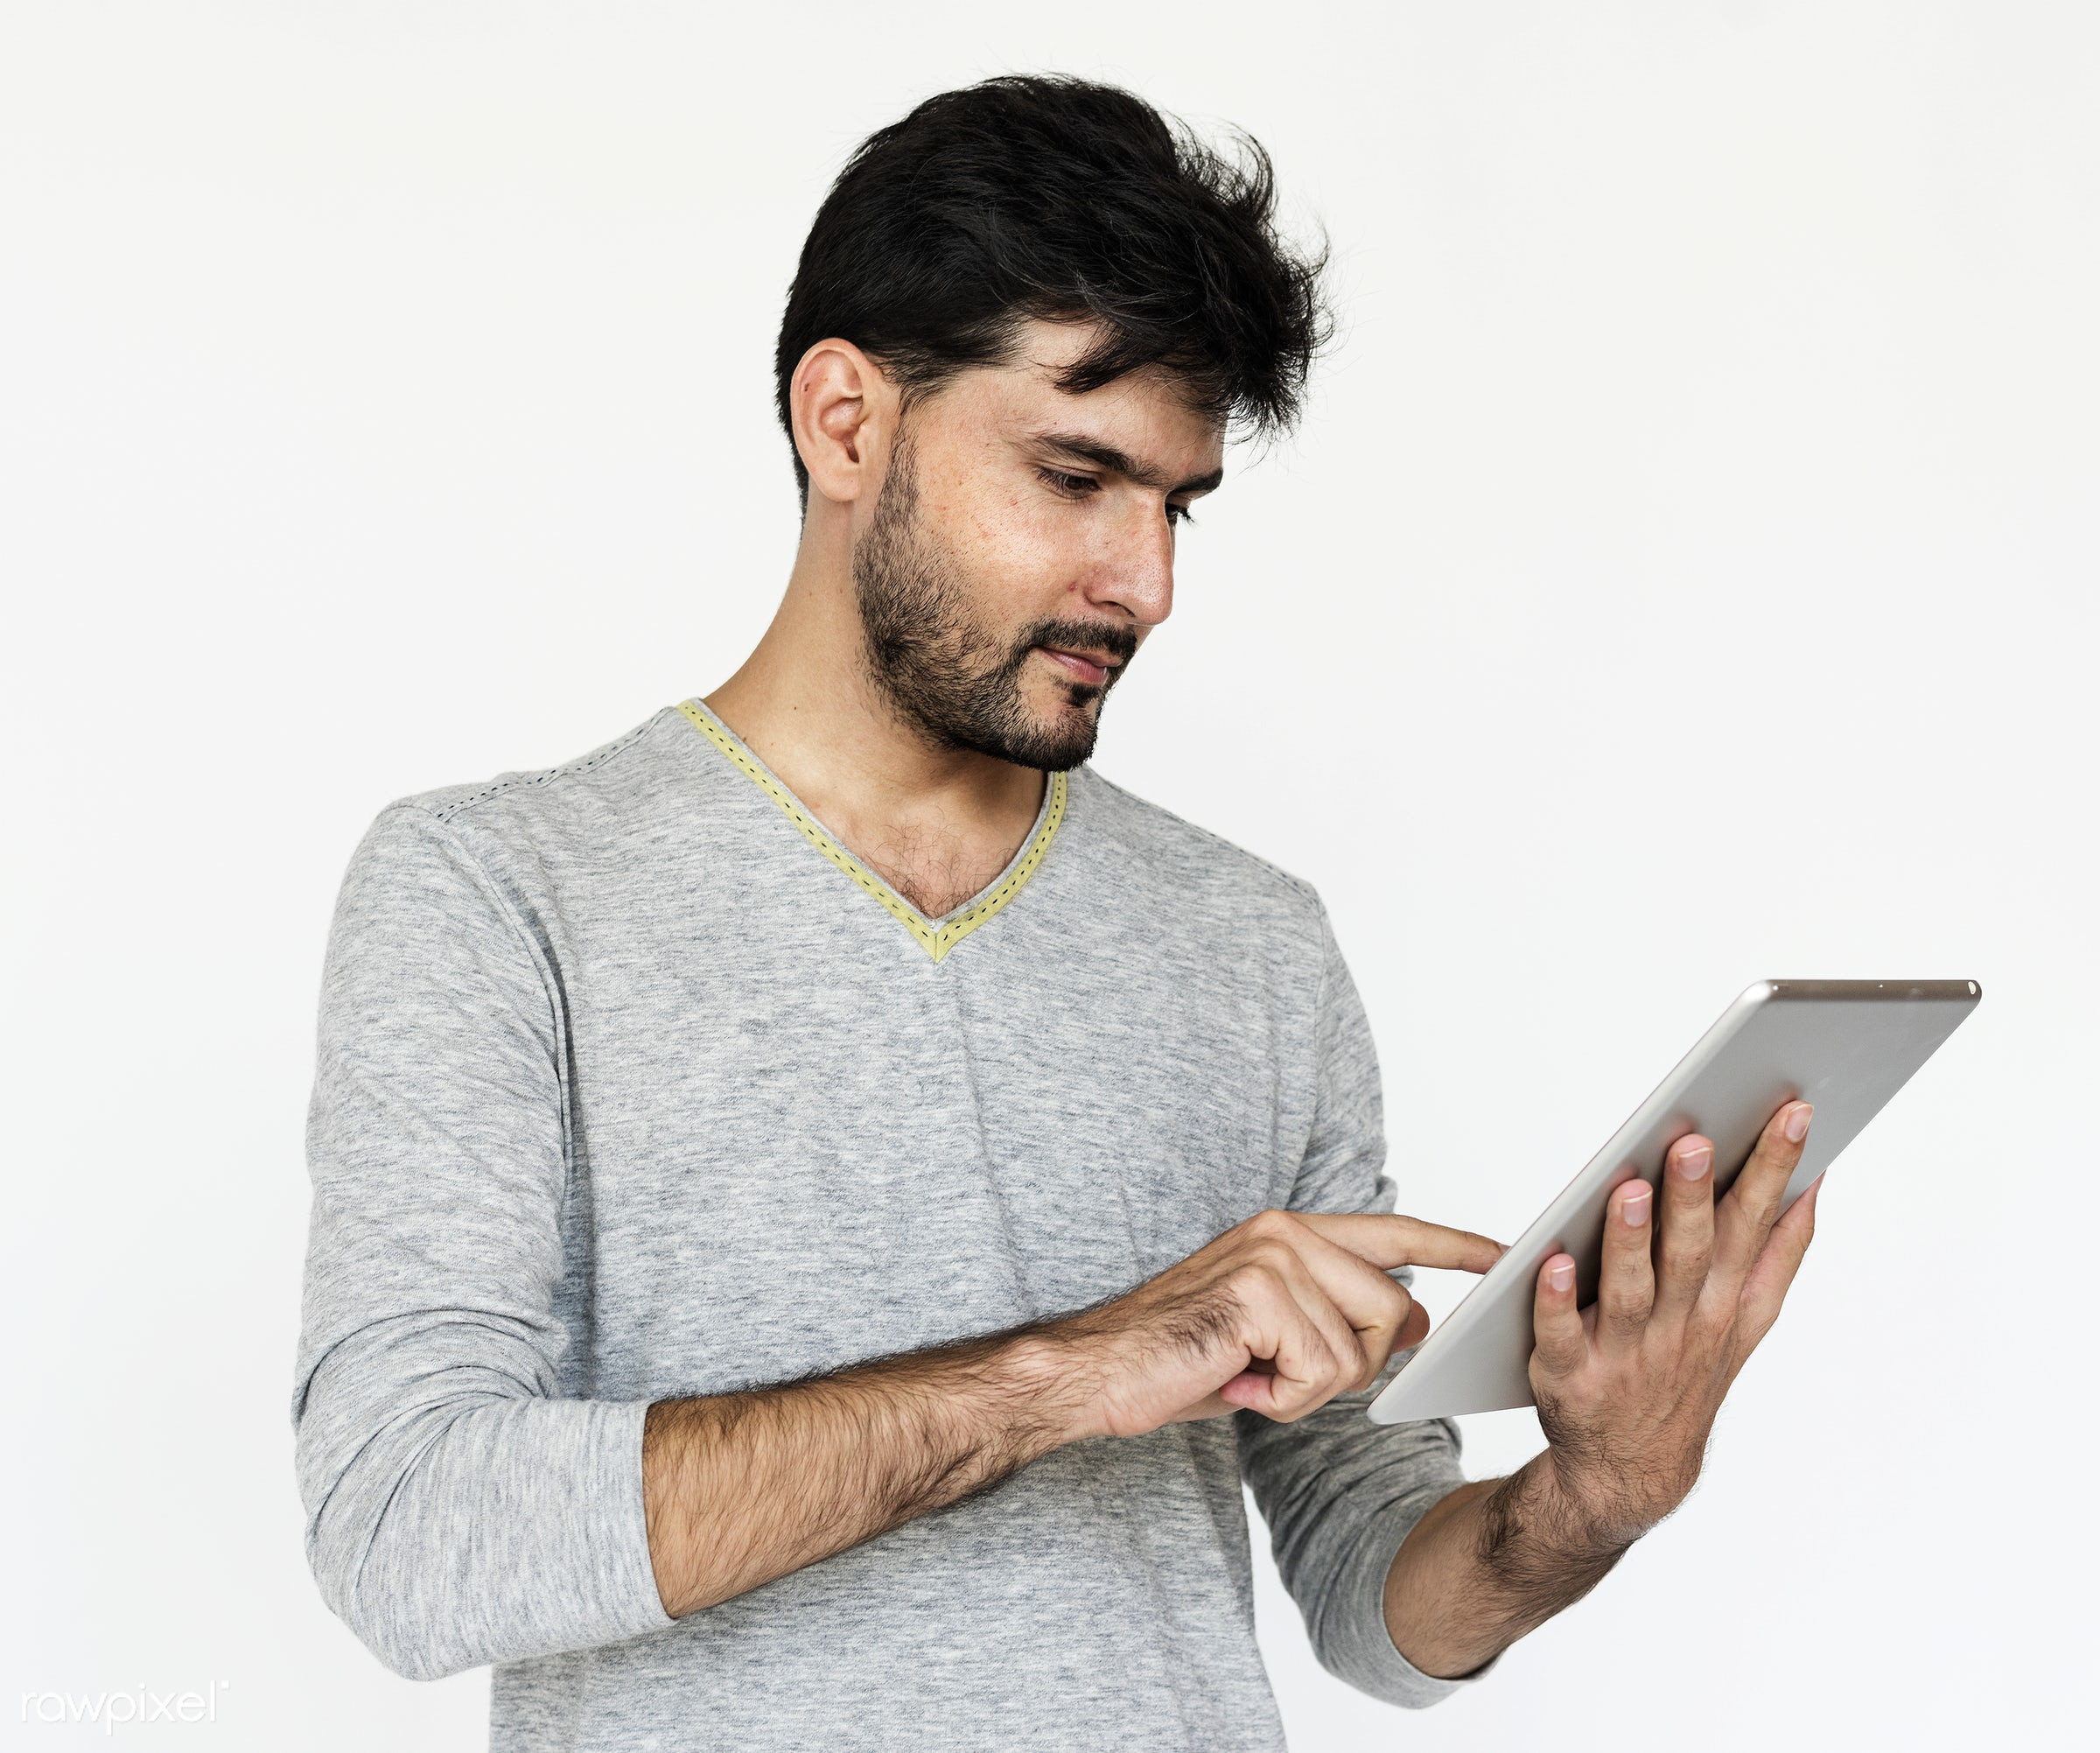 Portrait of a man using a digital tablet - adult, afghan, afghanistan, alone, asian, beard, bearded, casual, closeup,...